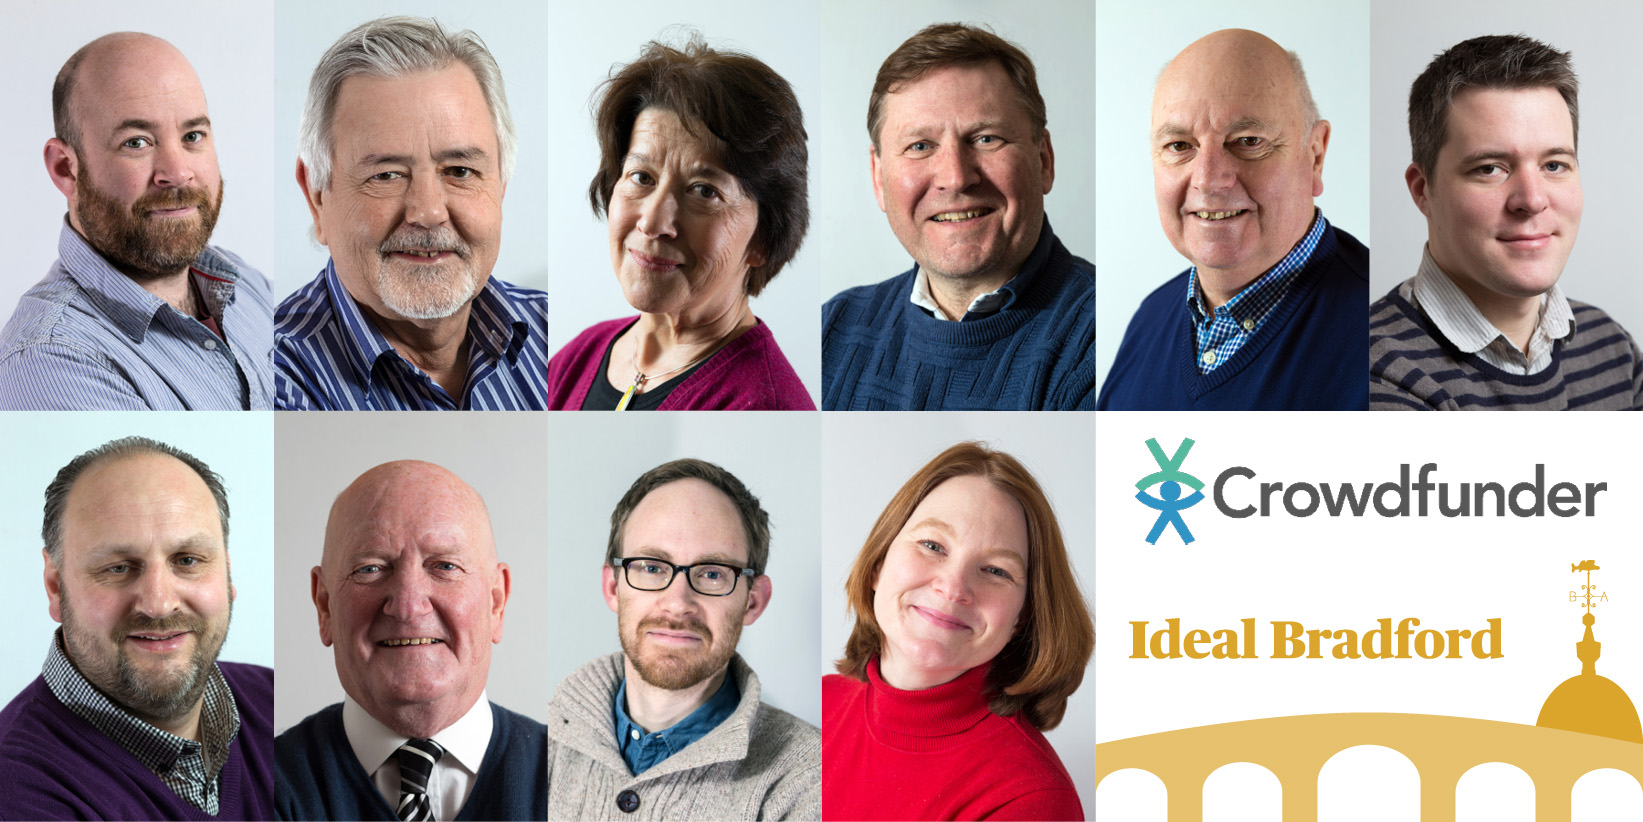 Ideal Bradford's ten candidates, Crowdfunder logo